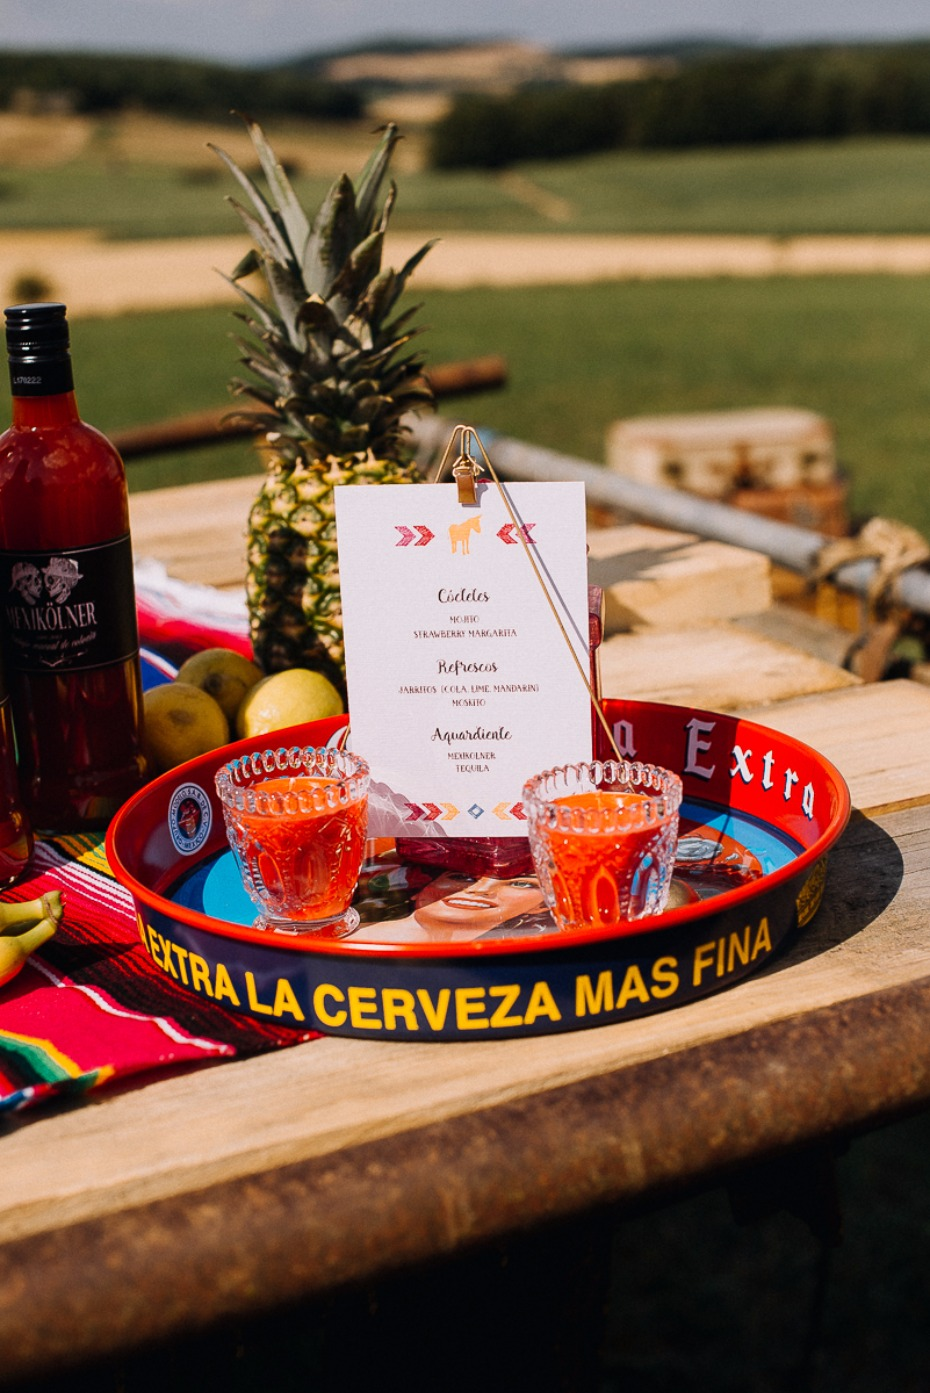 bar menu with a fiesta style